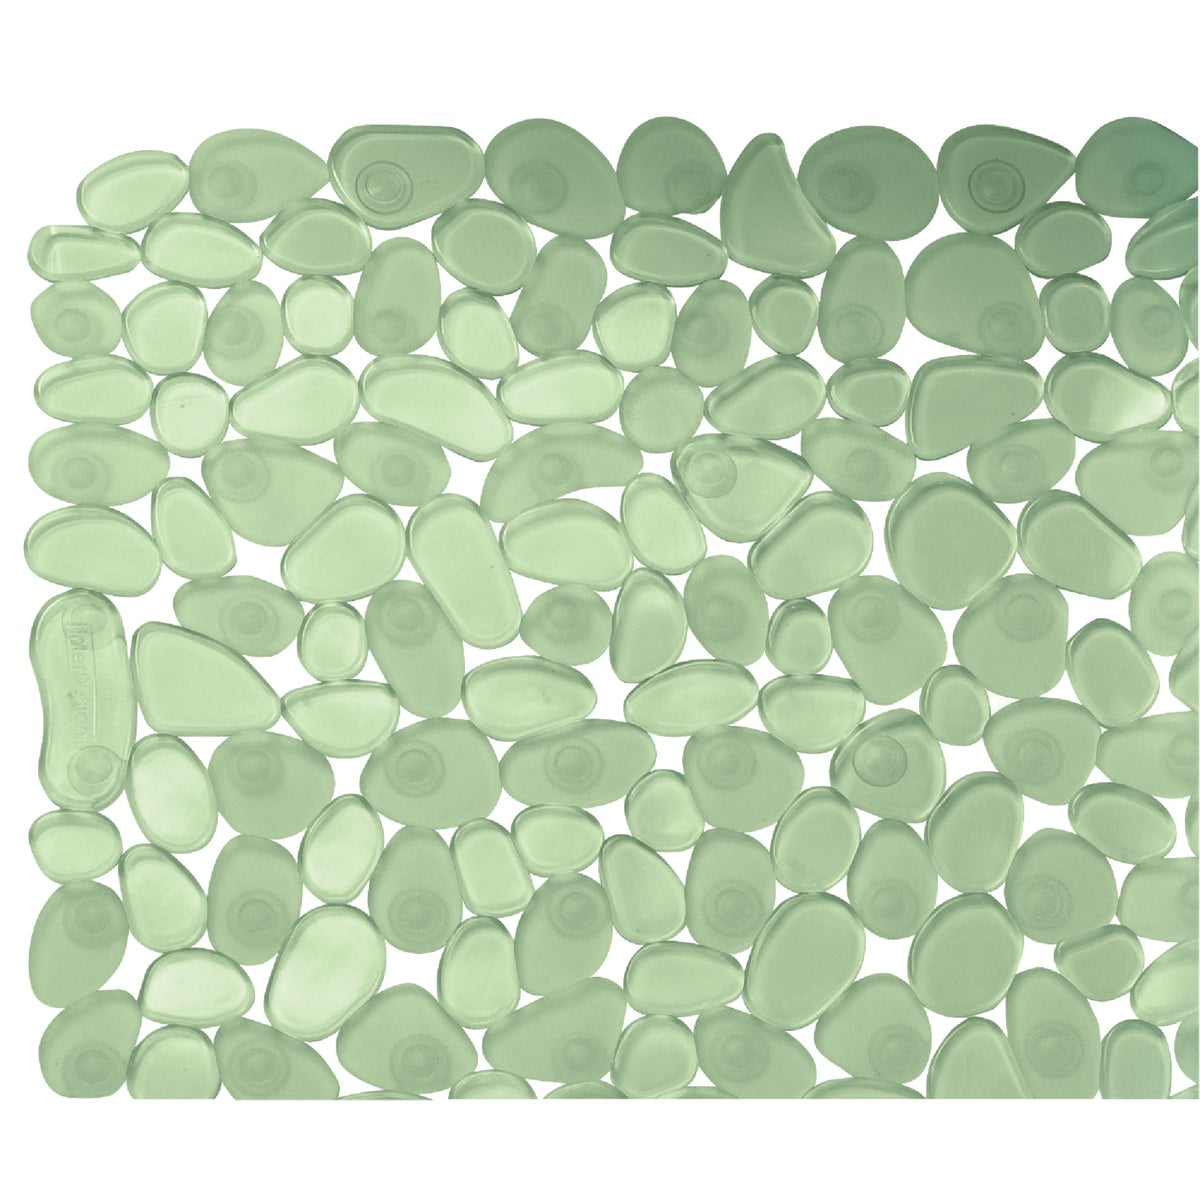 GREEN PEBBLZ BATH MAT - 80012 by Interdesign Inc